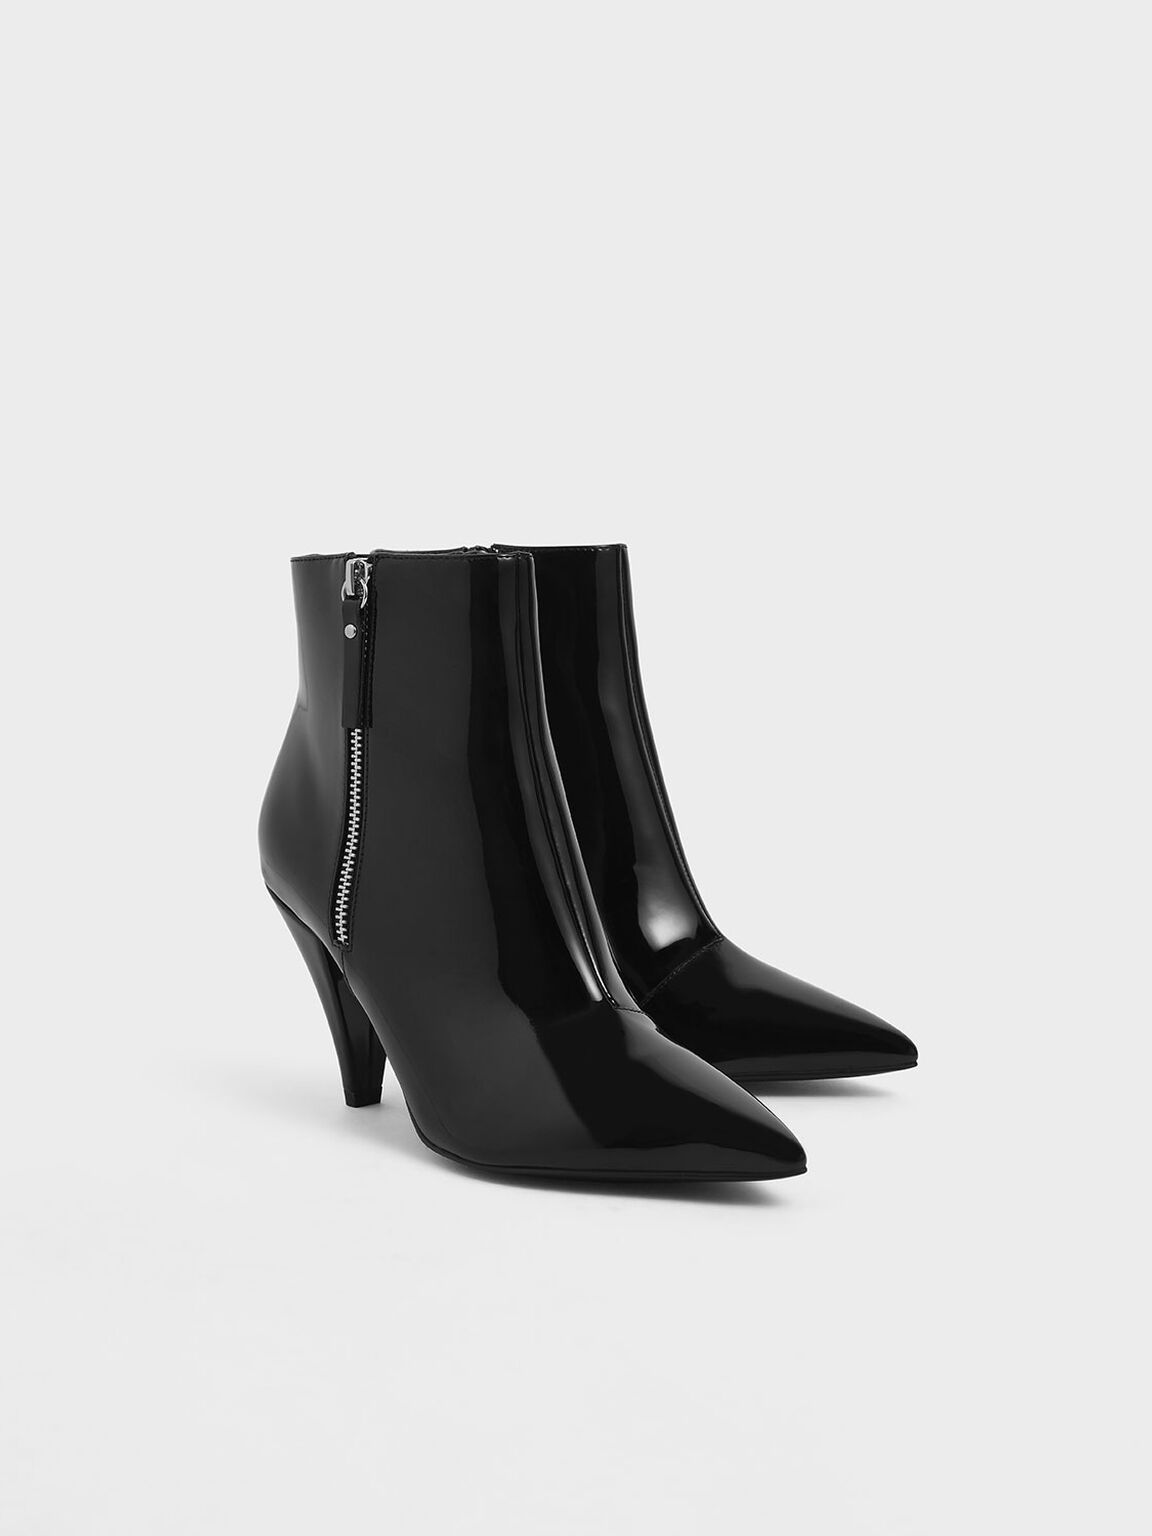 Patent Double Zip Pointed Toe Ankle Boots, Black Textured, hi-res